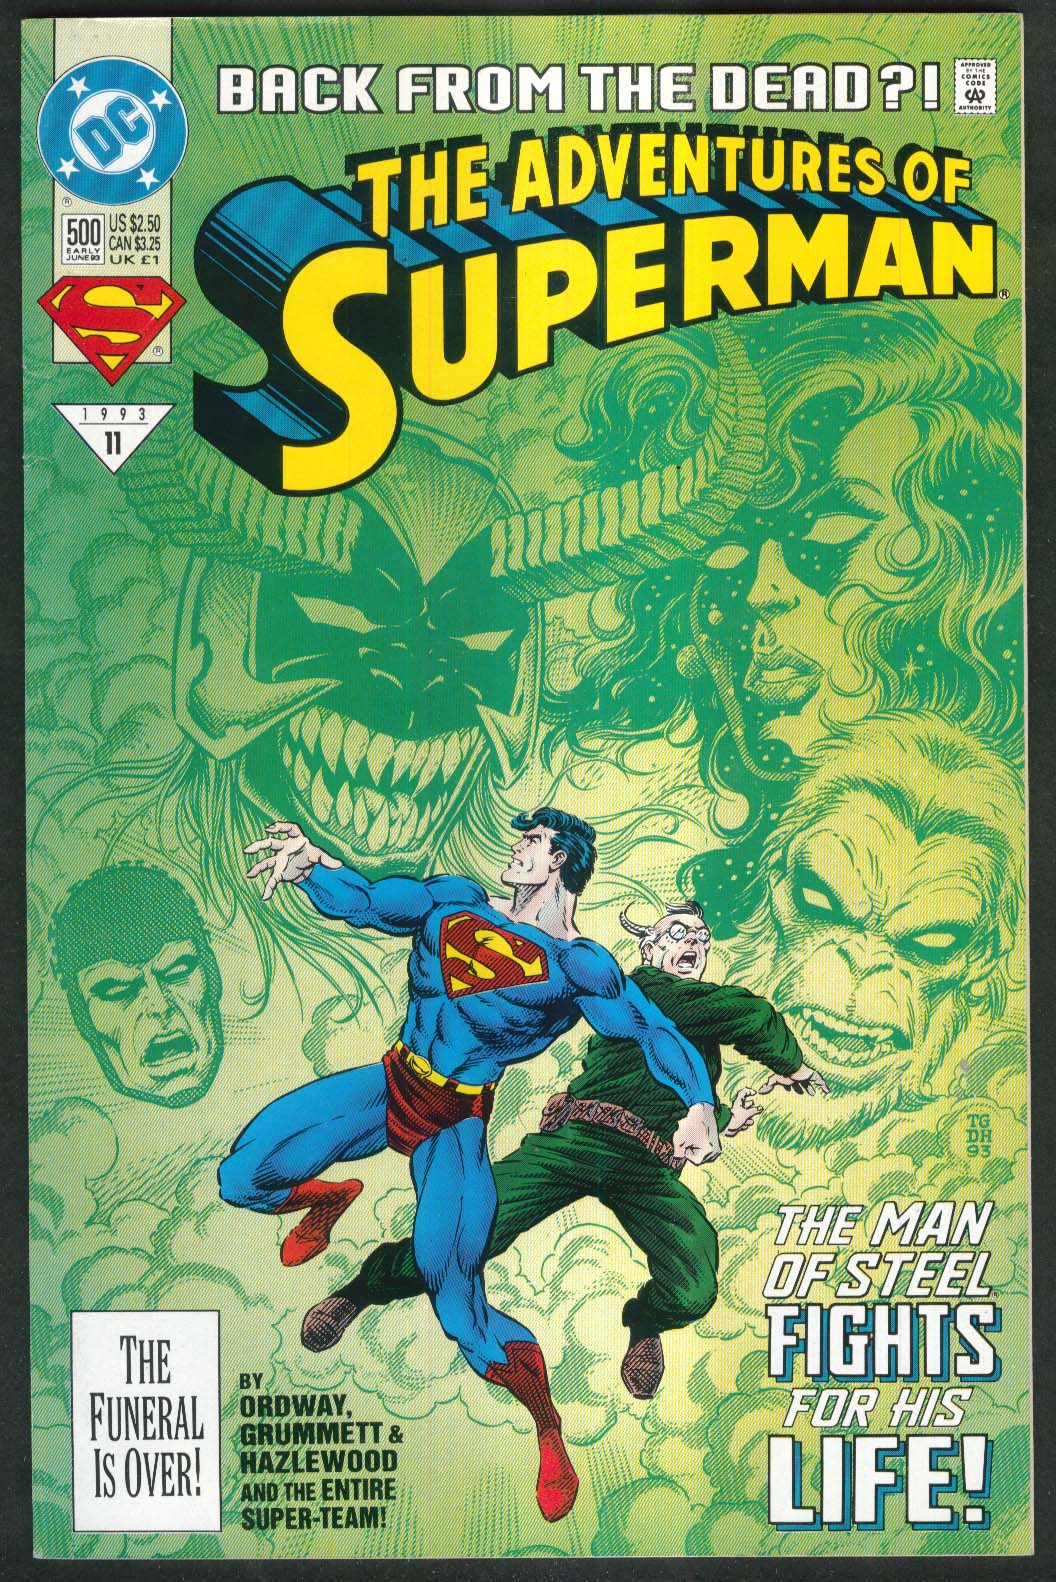 ADVENTURES of SUPERMAN #500 DC comic book 6 1993